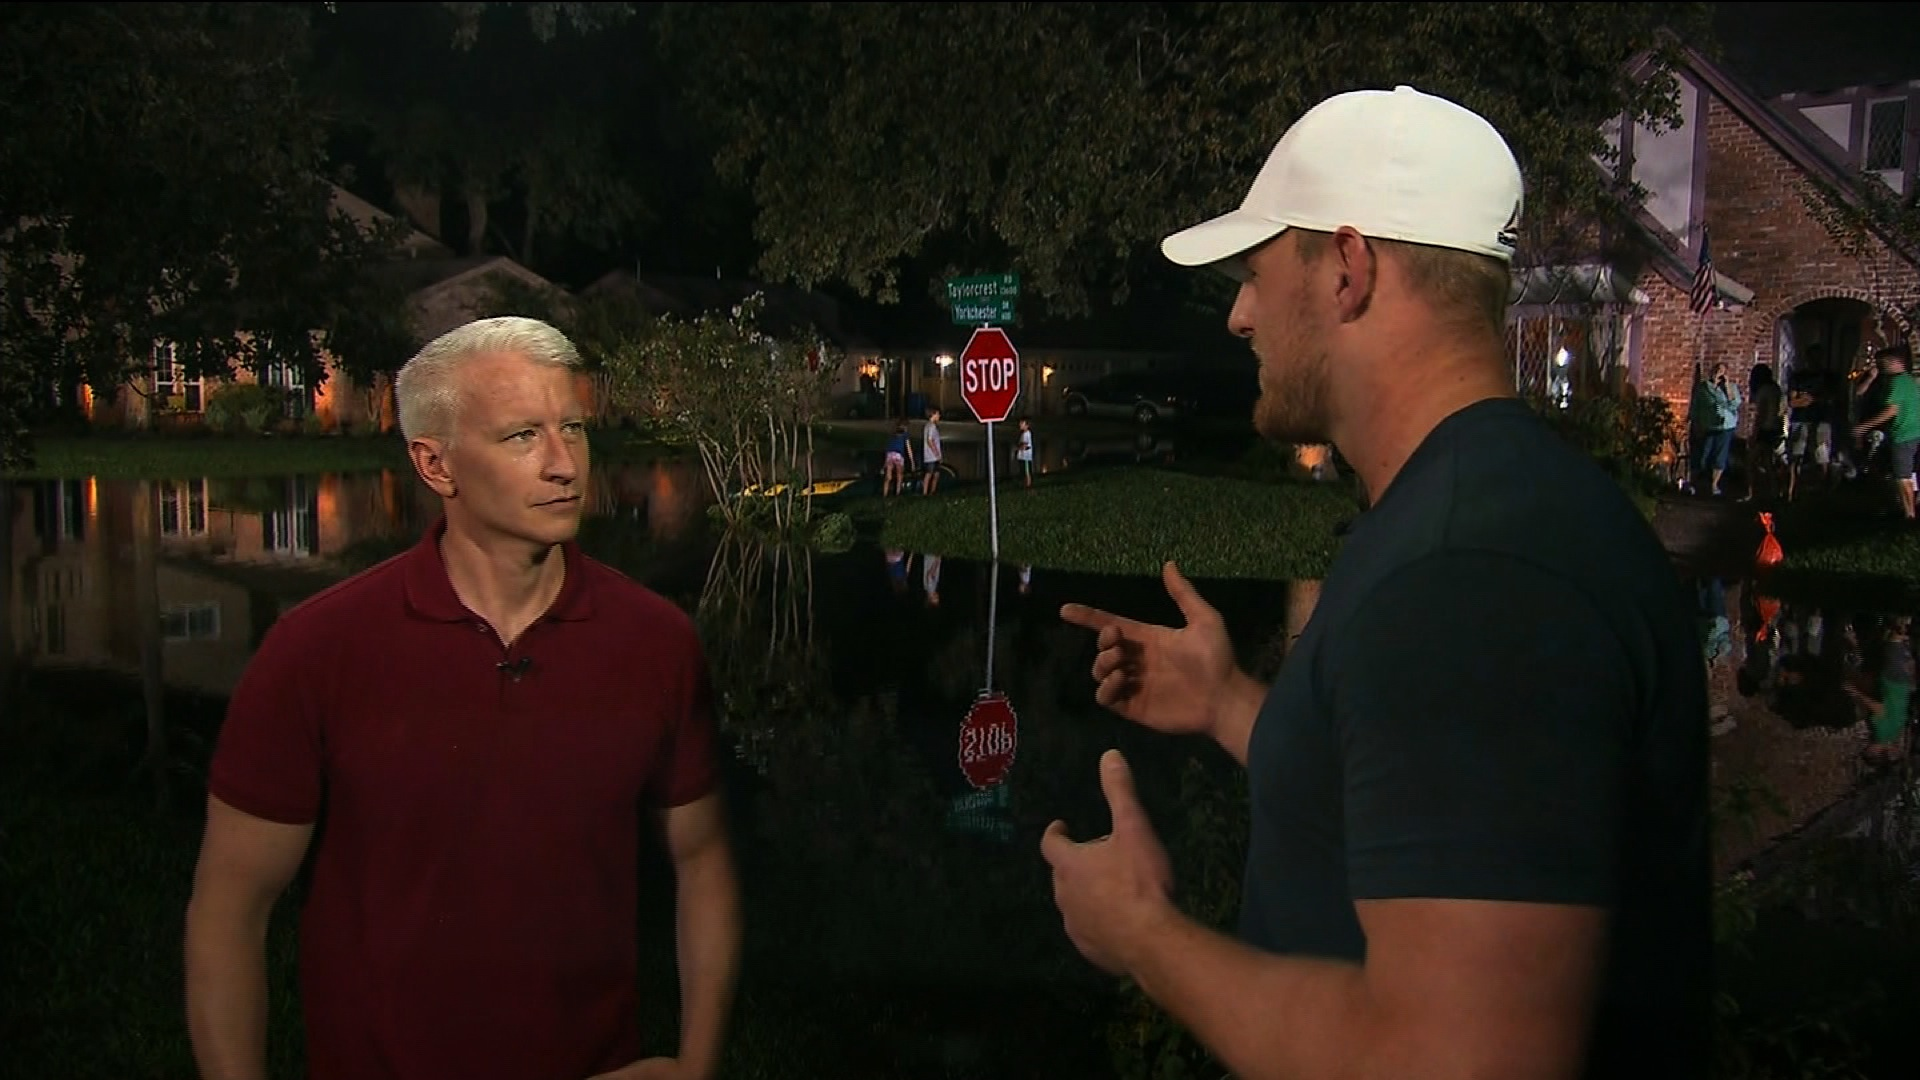 Jj watts interview with anderson cooper cnn video fandeluxe Choice Image